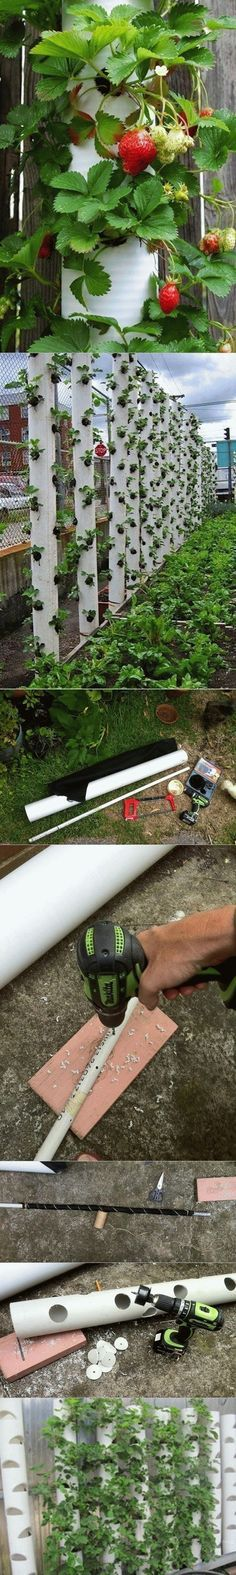 DIY Verticle PVC Pipe Strawberry Planter Tower